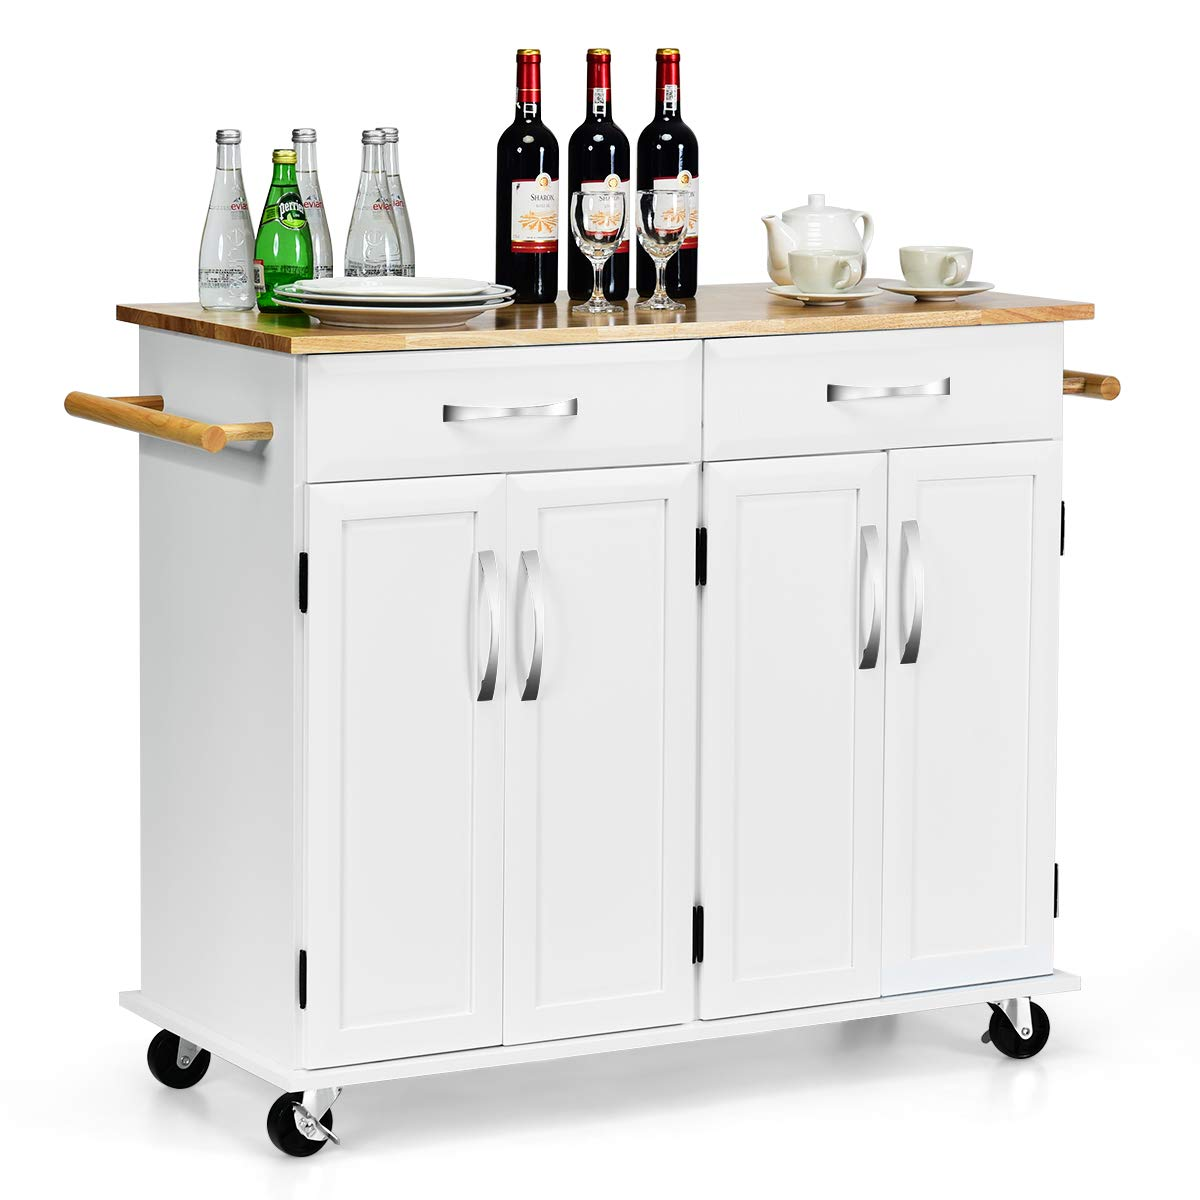 Giantex Kitchen Trolley Cart, Rolling Utility Island w/Rubber Wood Top, Large Storage Easy-Clean with Smooth Lockable Wheels Home Kitchen Carts (White) by Giantex